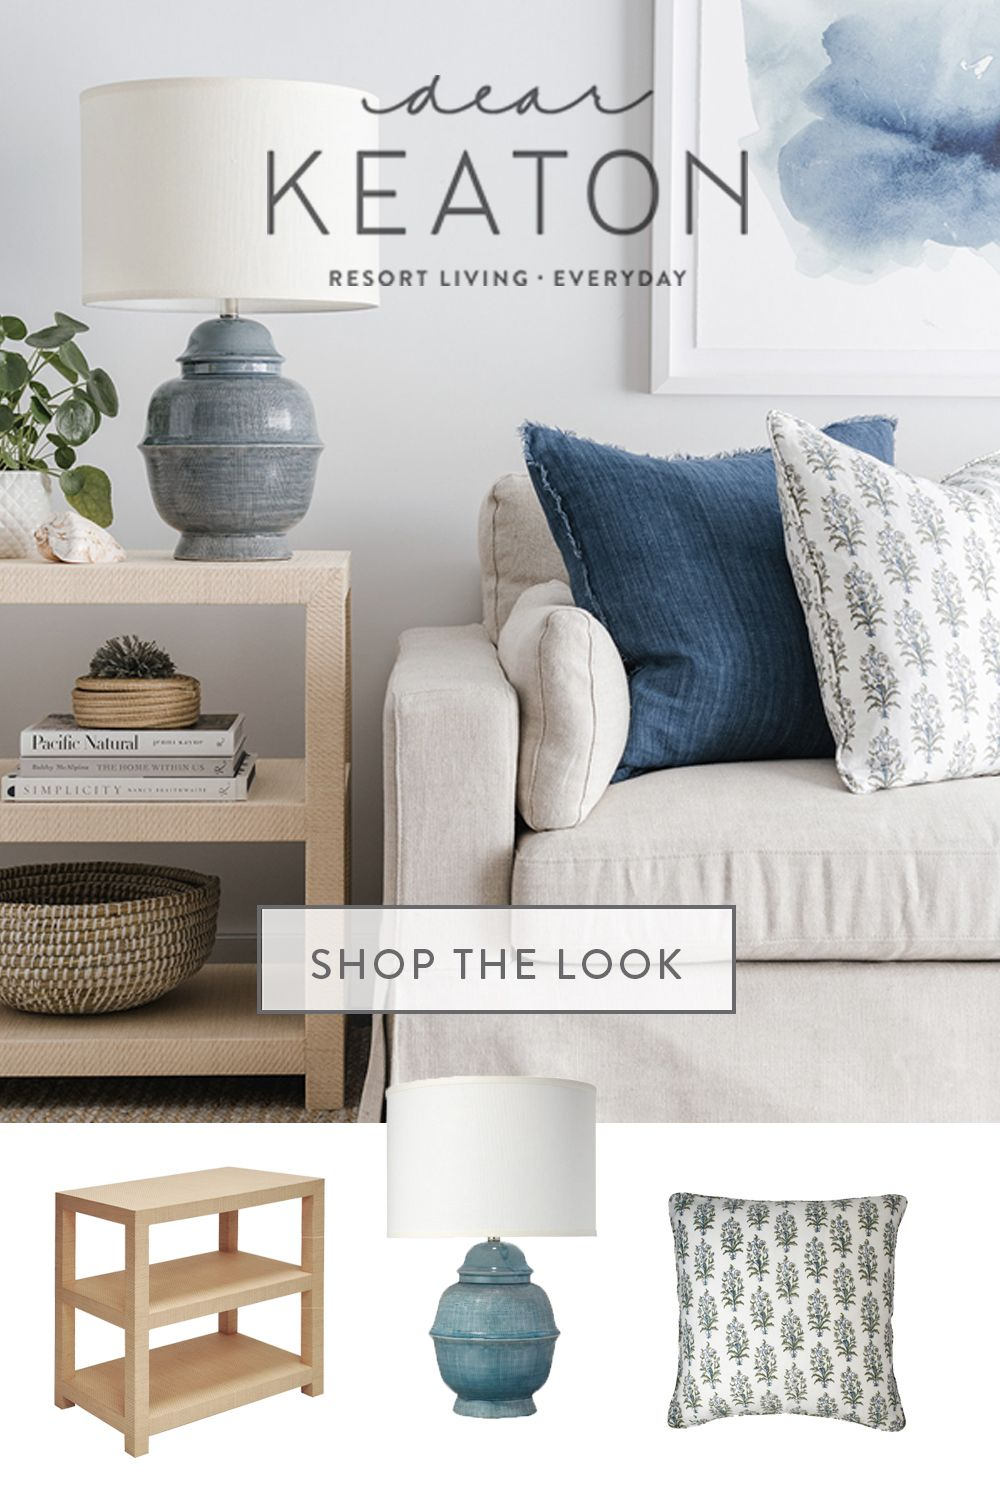 Discover Unique Furniture Lighting Rugs And Home Decor From Dear Keaton In 2020 Apartment Decorating On A Budget Home Decor Apartment Decor